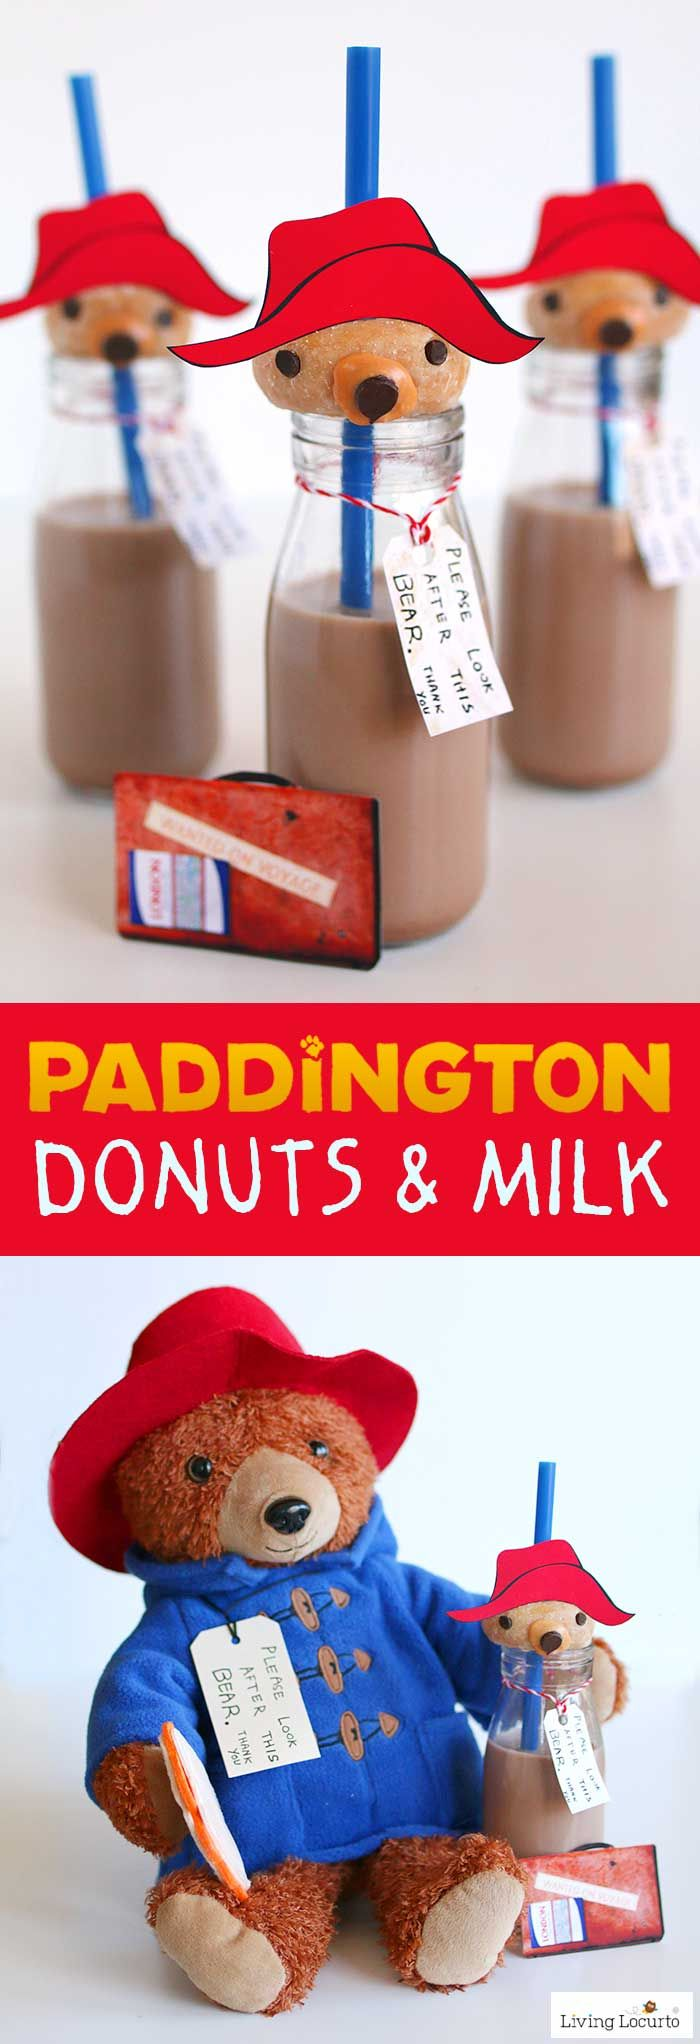 Paddington bear donuts and milk are adorable no bake party treats! A simple DIY fun food recipe idea inspired by the movie PADDINGTON 2. Get free printables and directions for how to make these cute bear donuts food craft. Cute dessert for a Paddington Birthday Party or family movie night! LivingLocuto.com